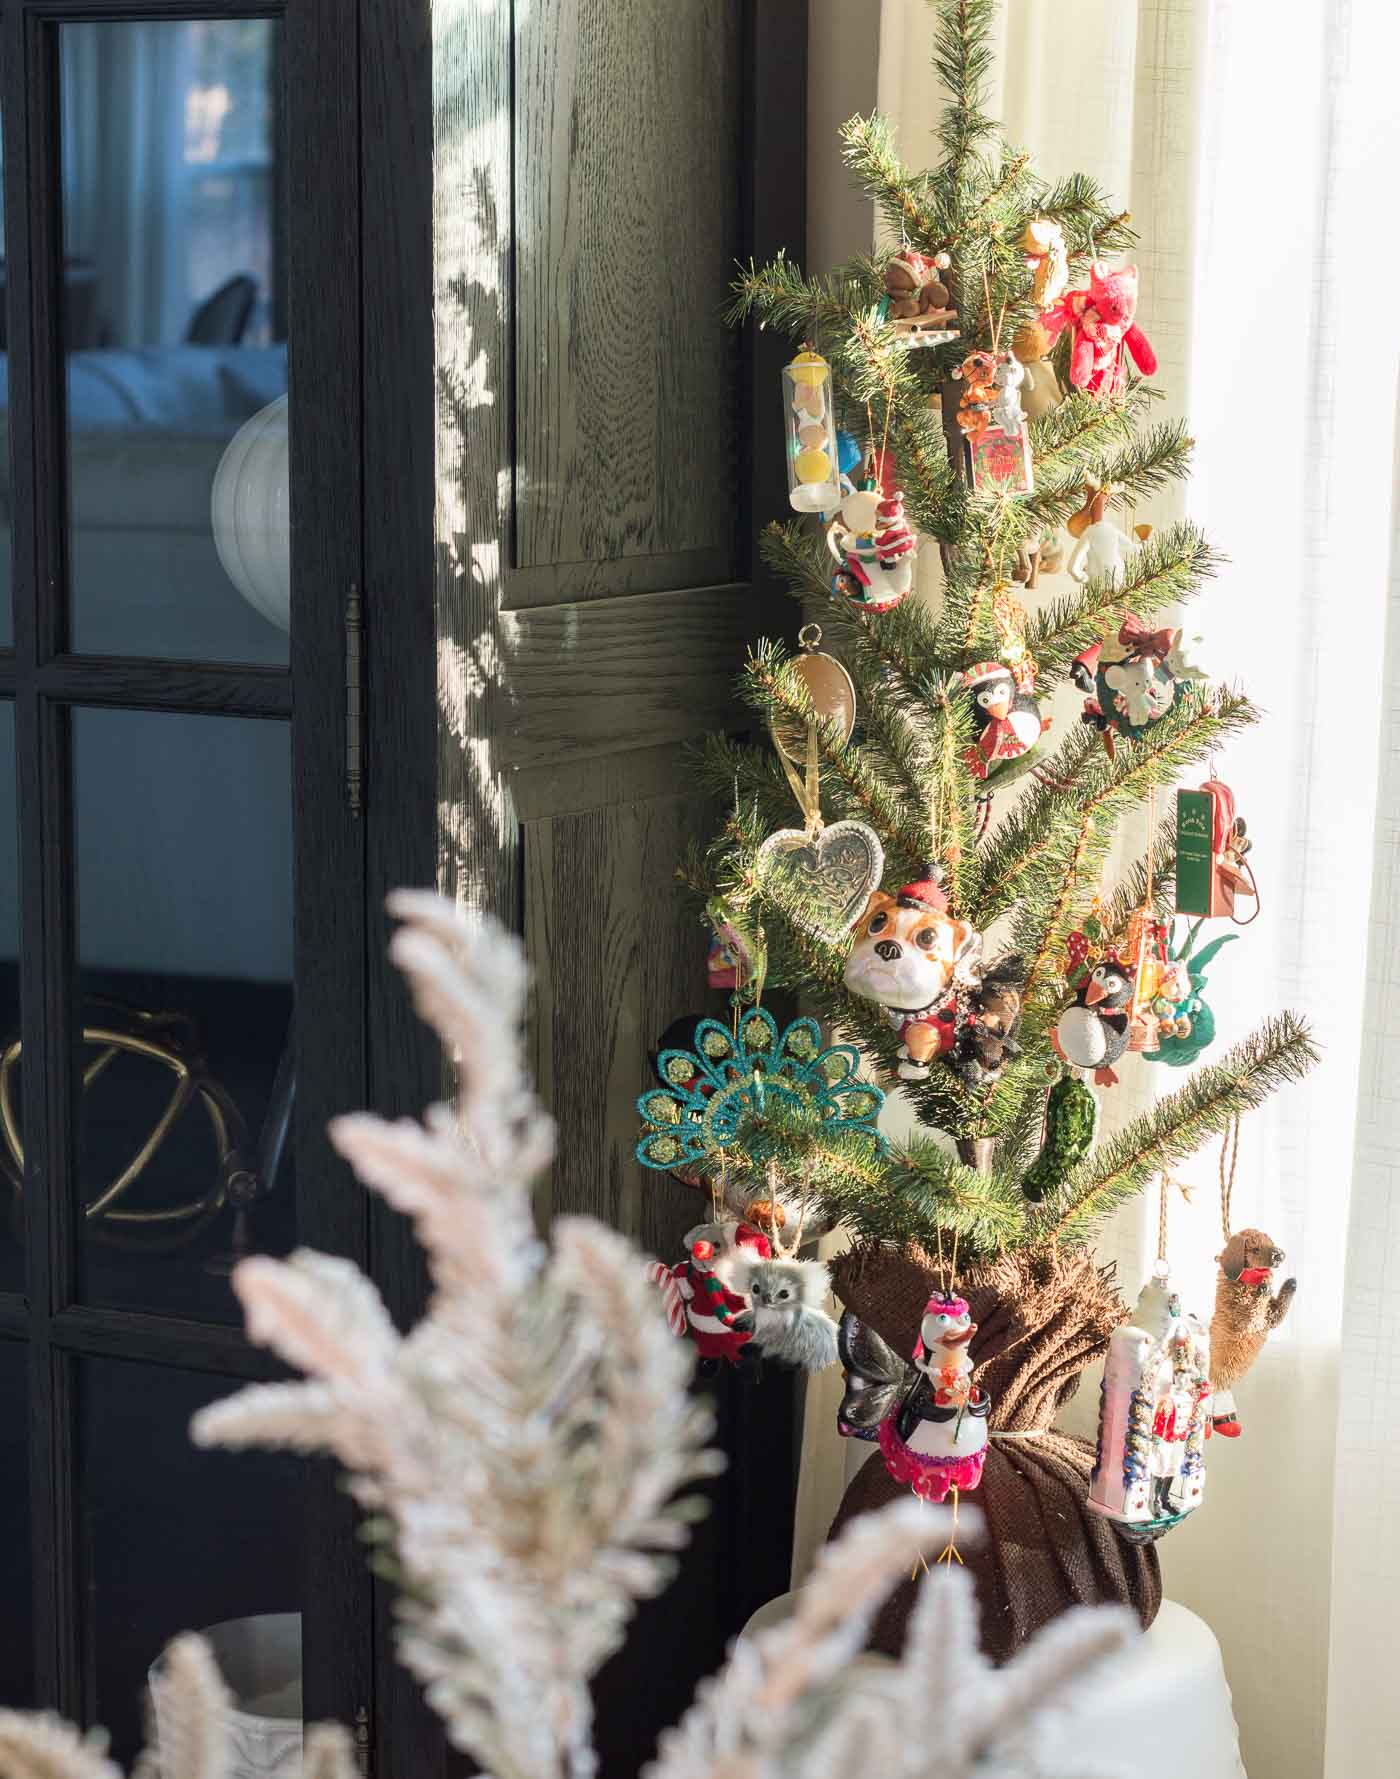 How to decorate a sentimental, special Christmas tree